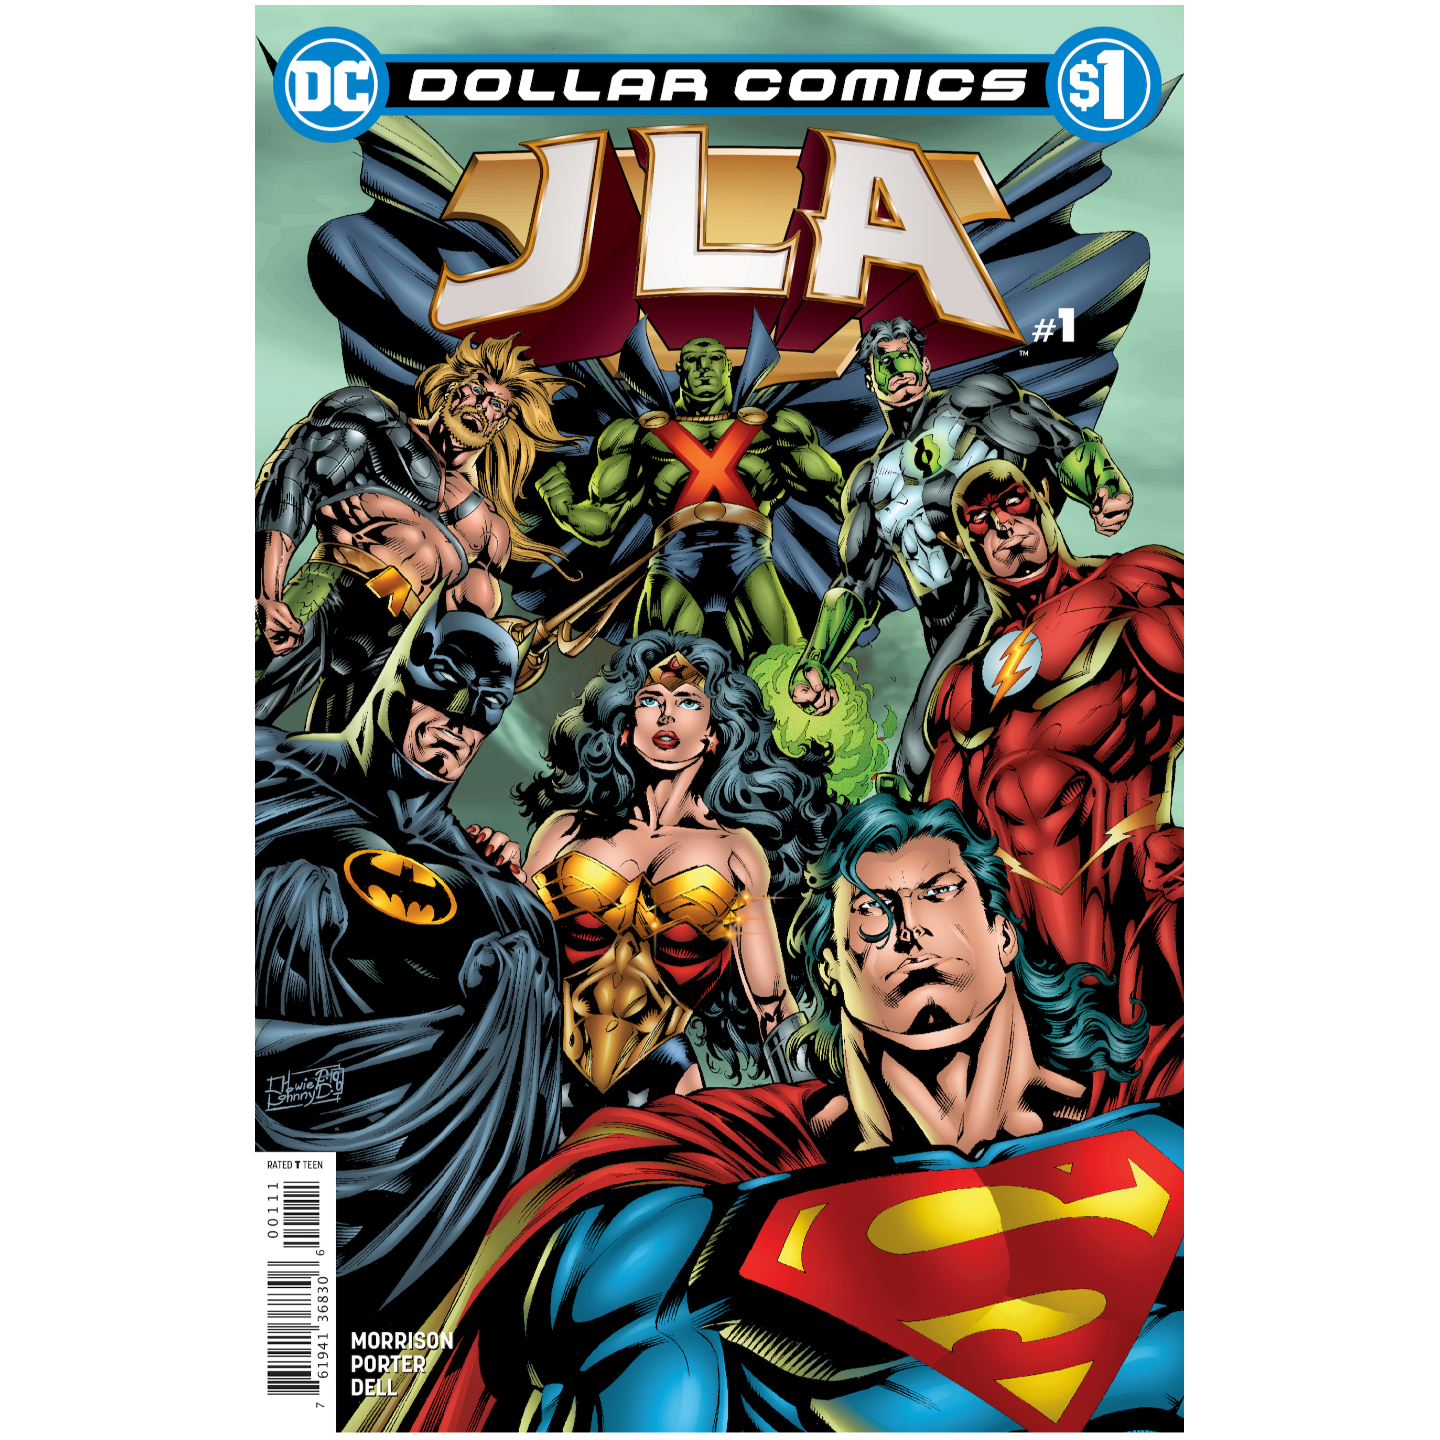 DOLLAR COMICS JLA 1